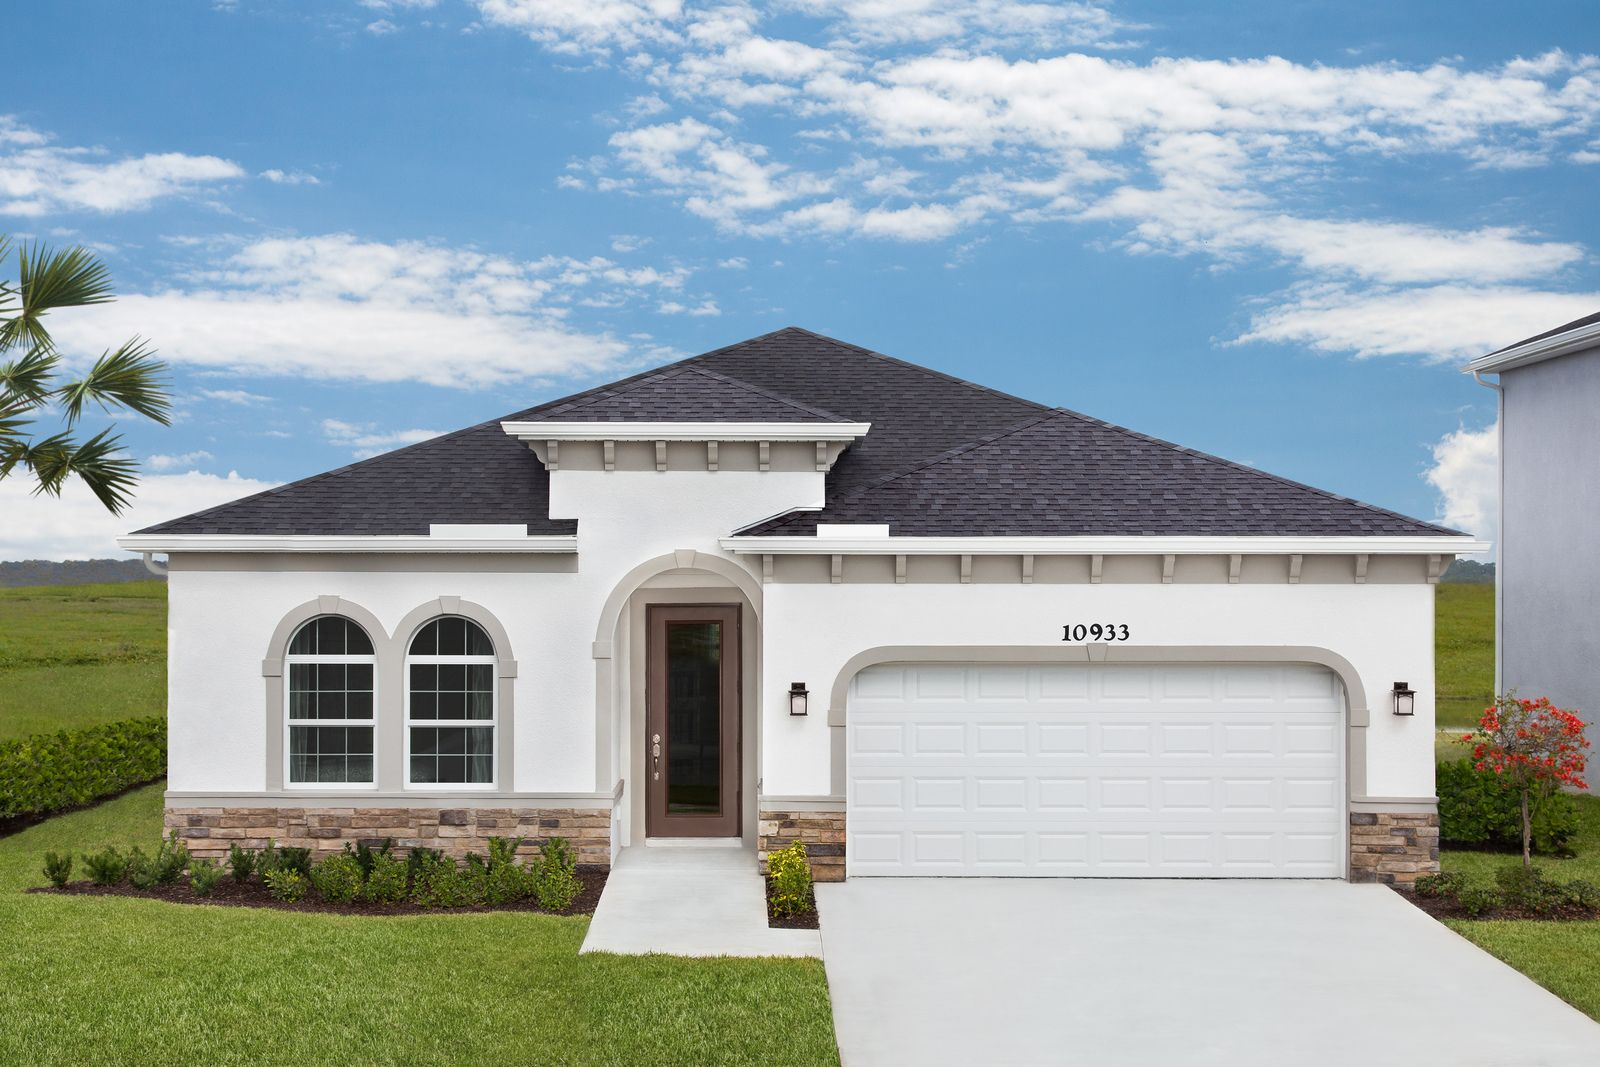 NEW SINGLE-FAMILY HOMES IN ST. LUCIE COUNTY FROM MID $300S